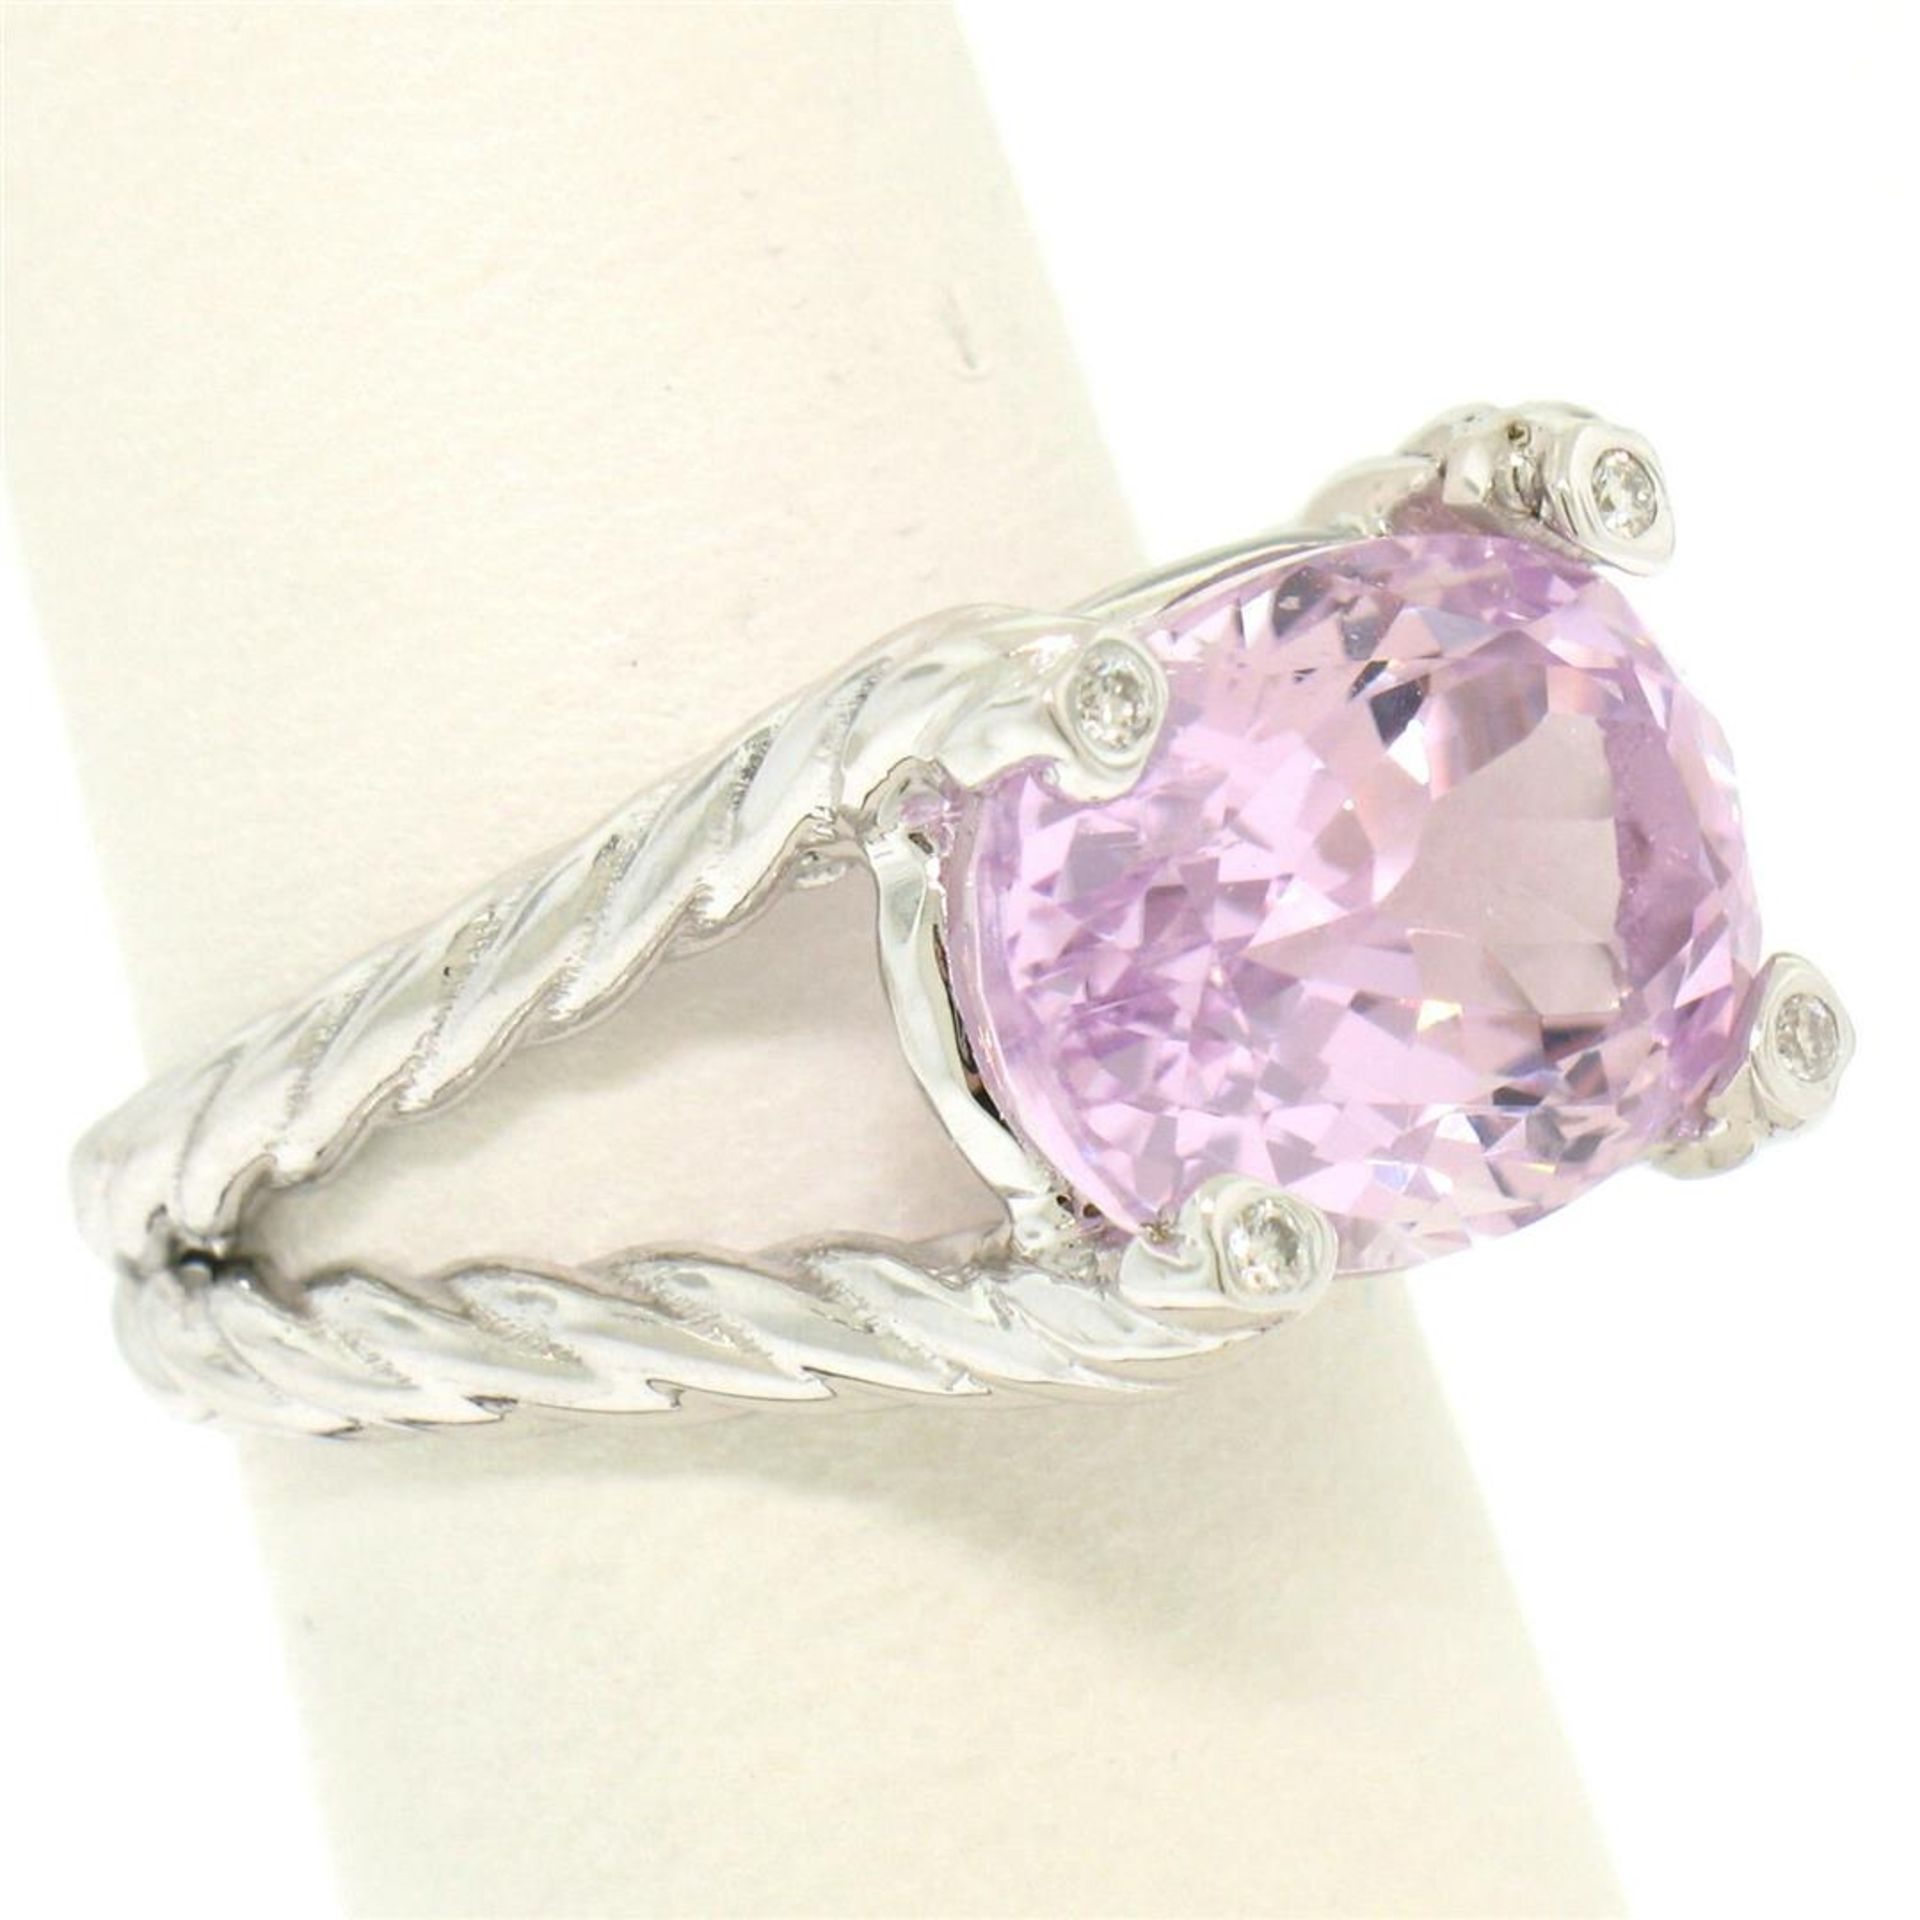 14k White Gold Twisted Cable 8.5 ctw Oval Kunzite Solitaire Ring 4 Diamond Accen - Image 3 of 8